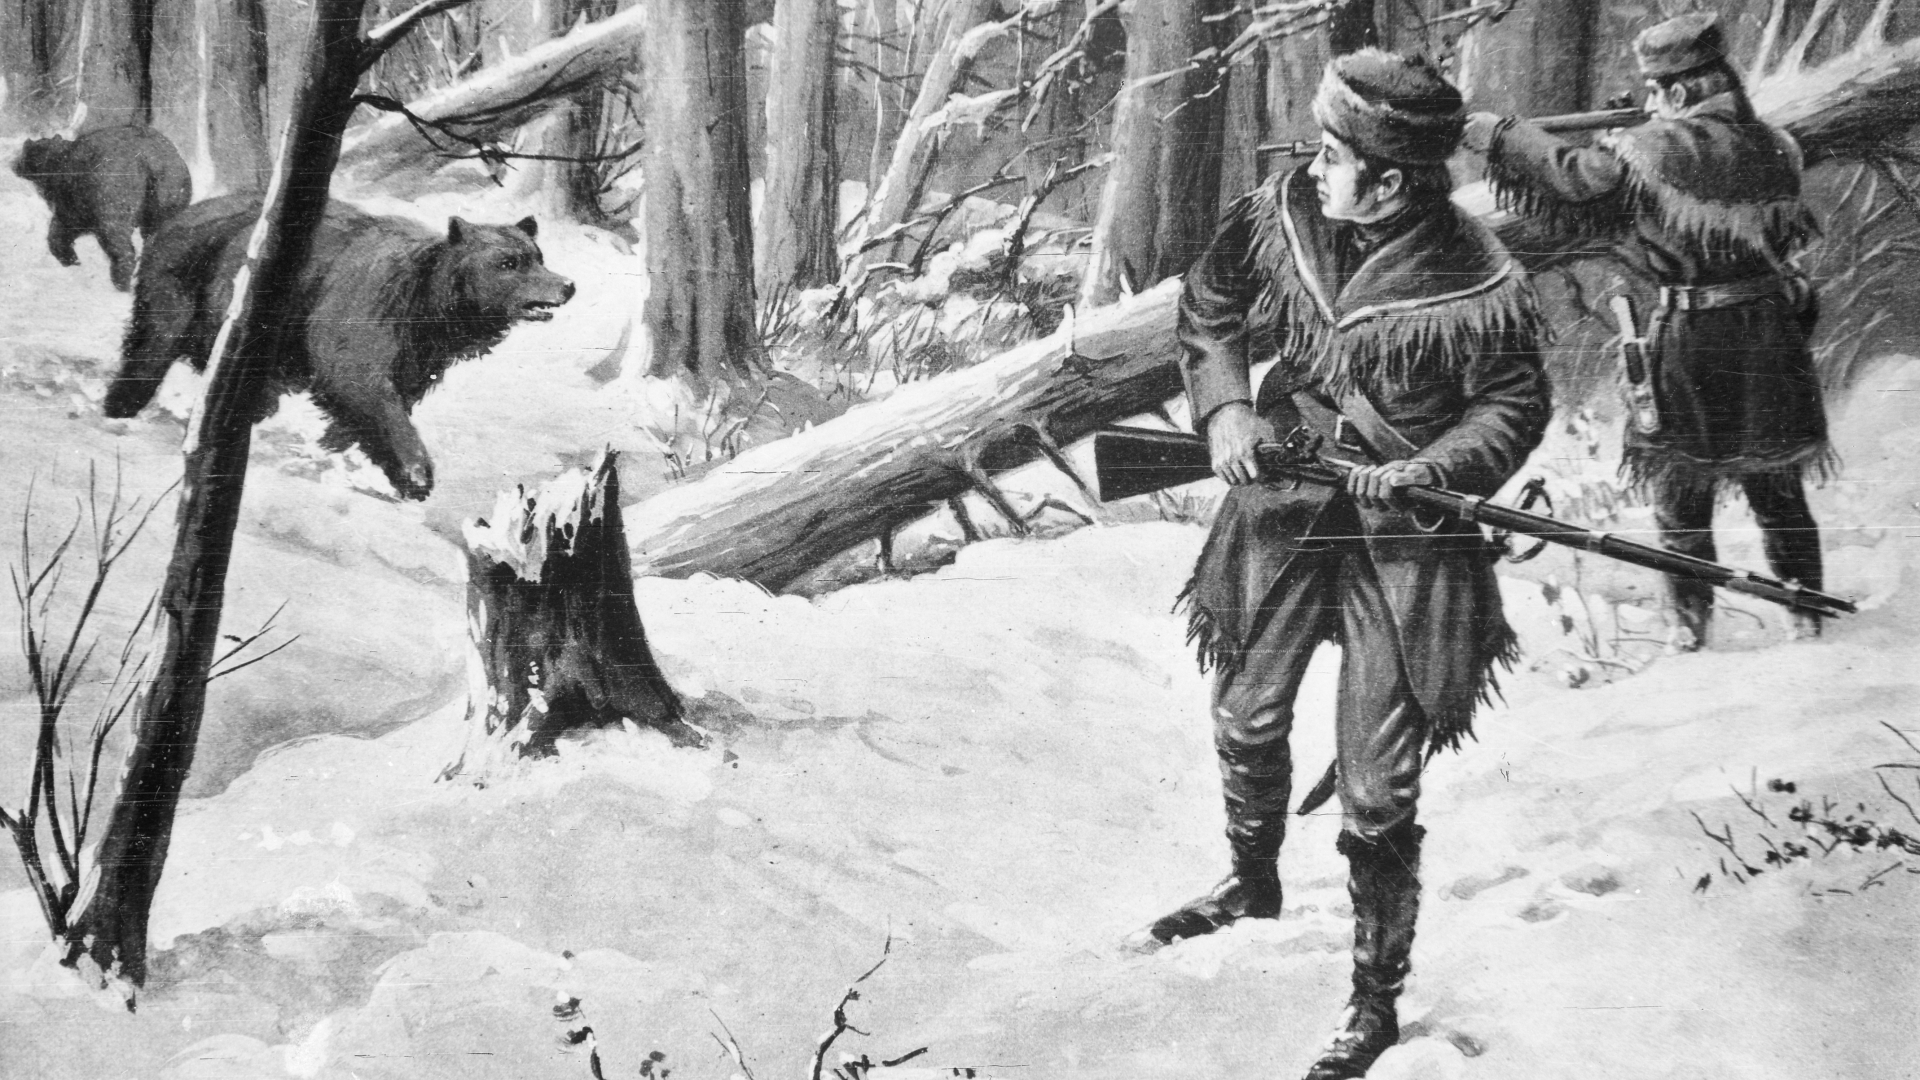 Frontiersman Lewis and Clark fighting off bears. (Credit: Bettmann Archives/Getty Images)